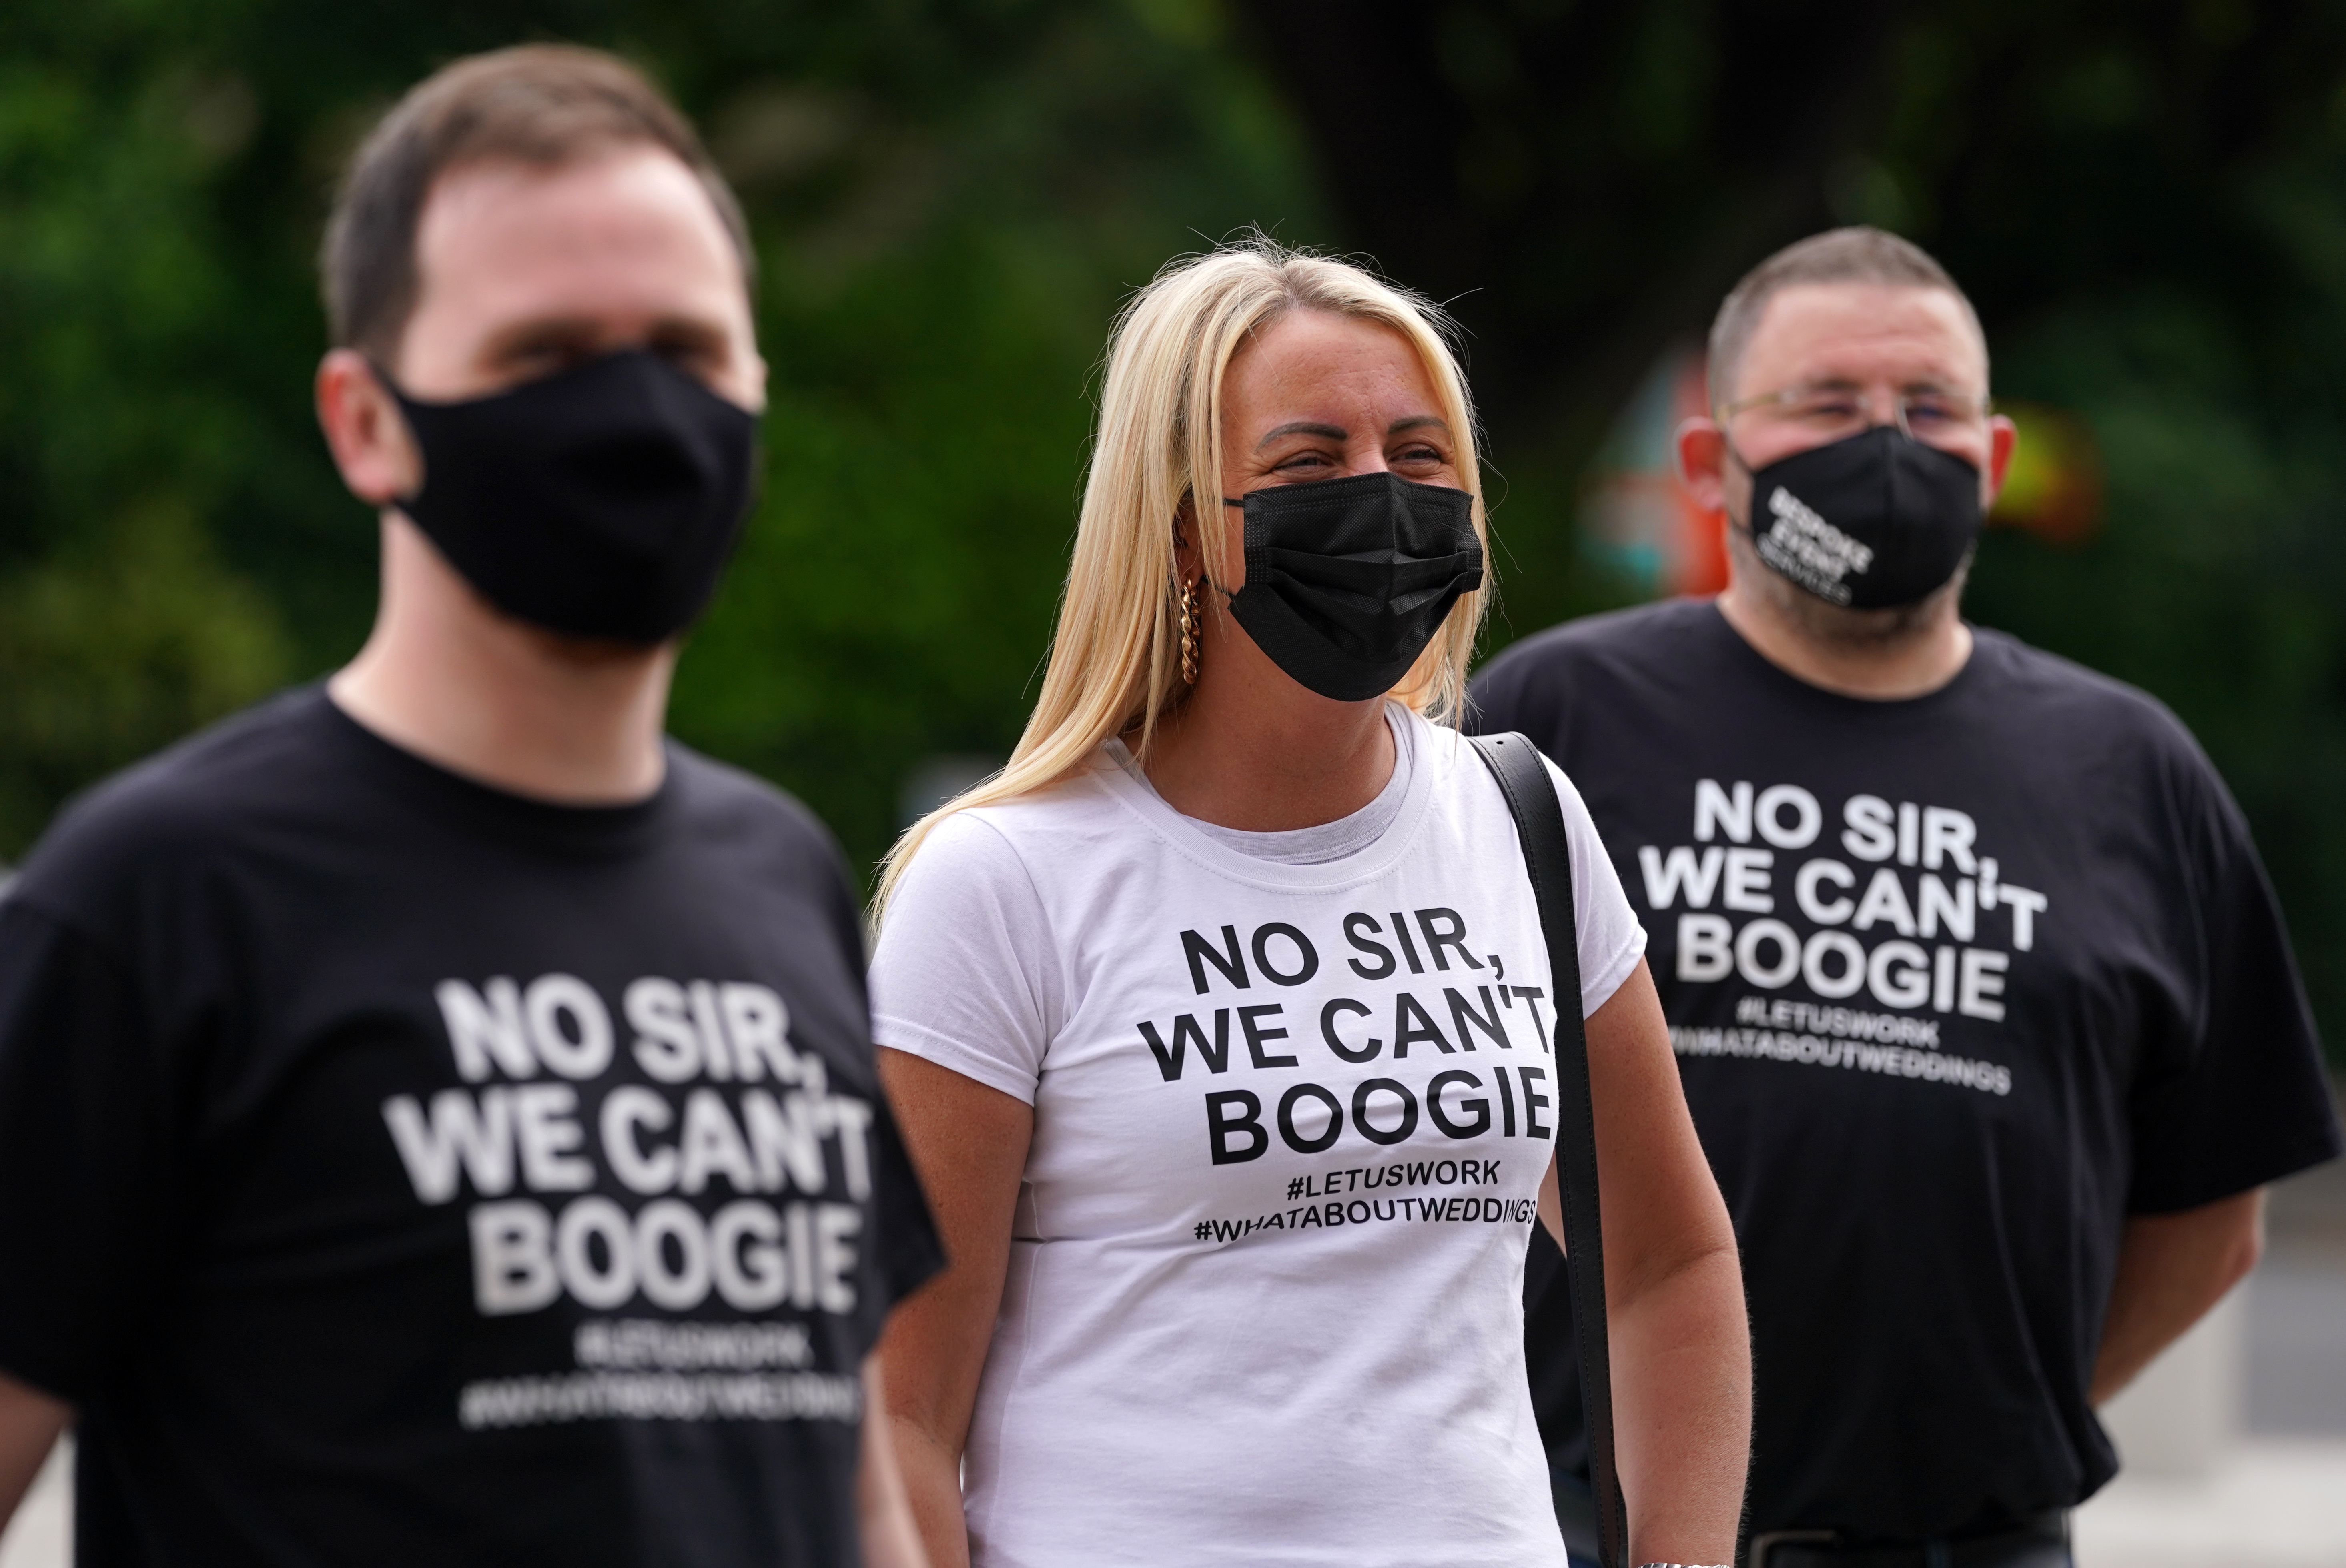 <p>Members of the wedding industry protesting outside the Scottish Parliament in Edinburgh asking for the lifting of restrictions on Weddings. Picture date: Monday June 21, 2021.</p>